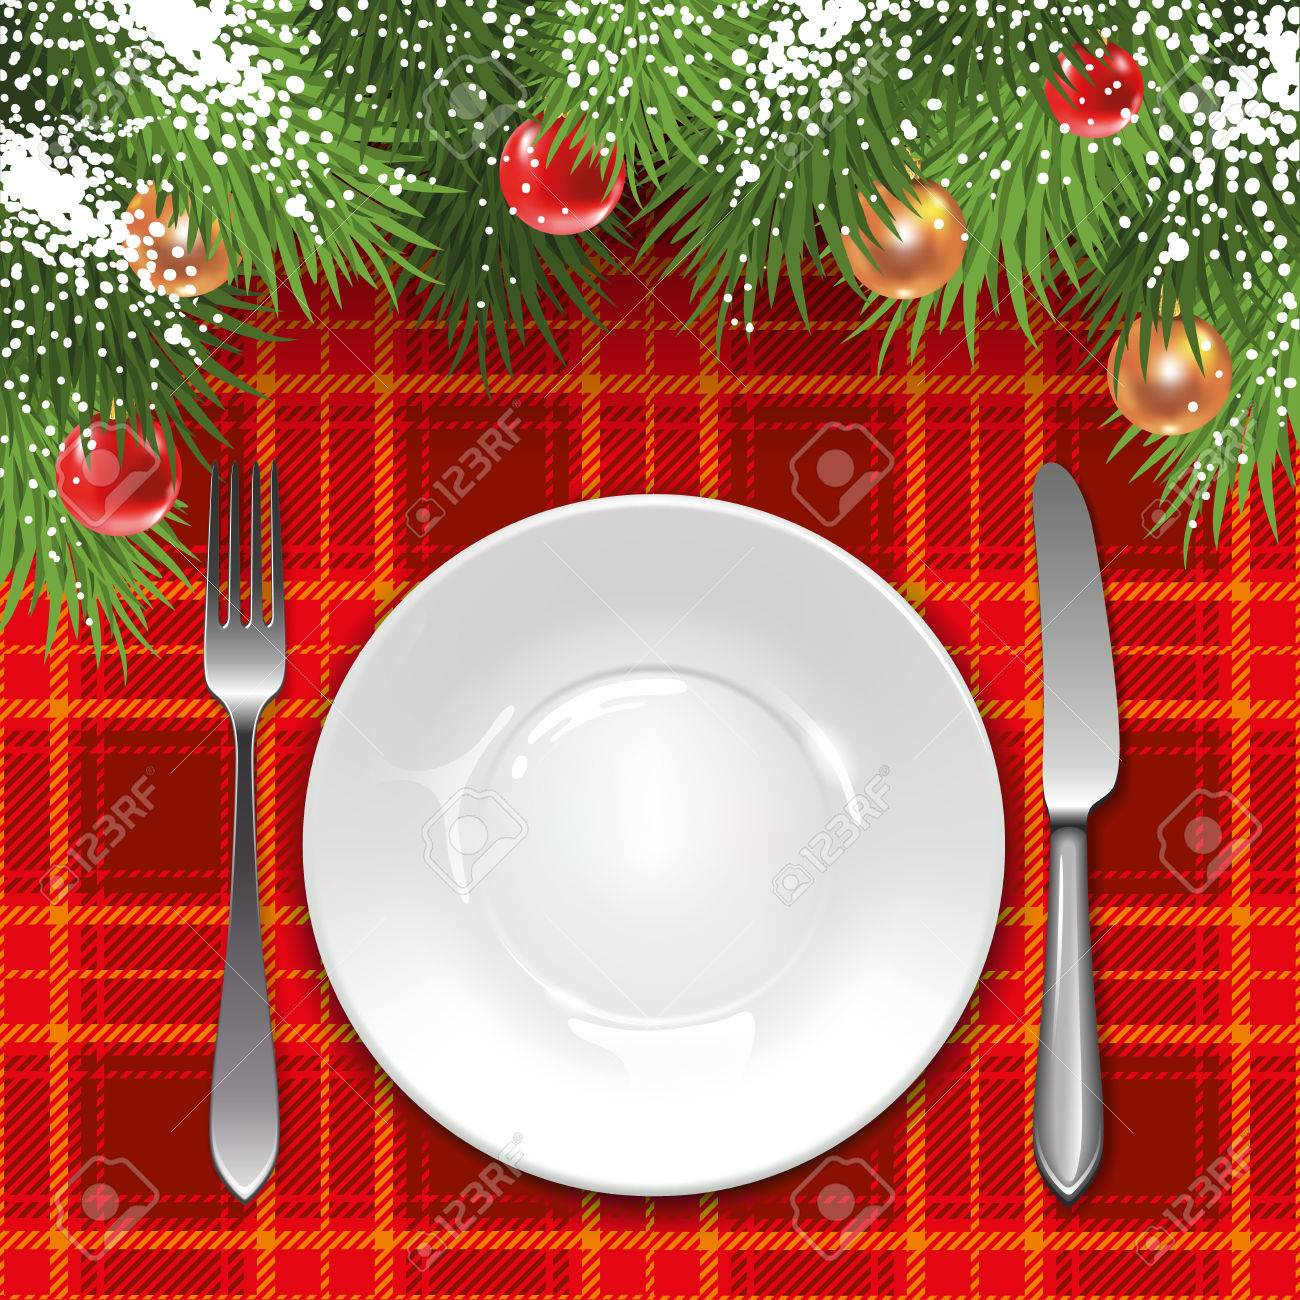 Christmas Menu Template With Holiday Decorations And Tartan Tablecloth.  Stock Vector   63163494